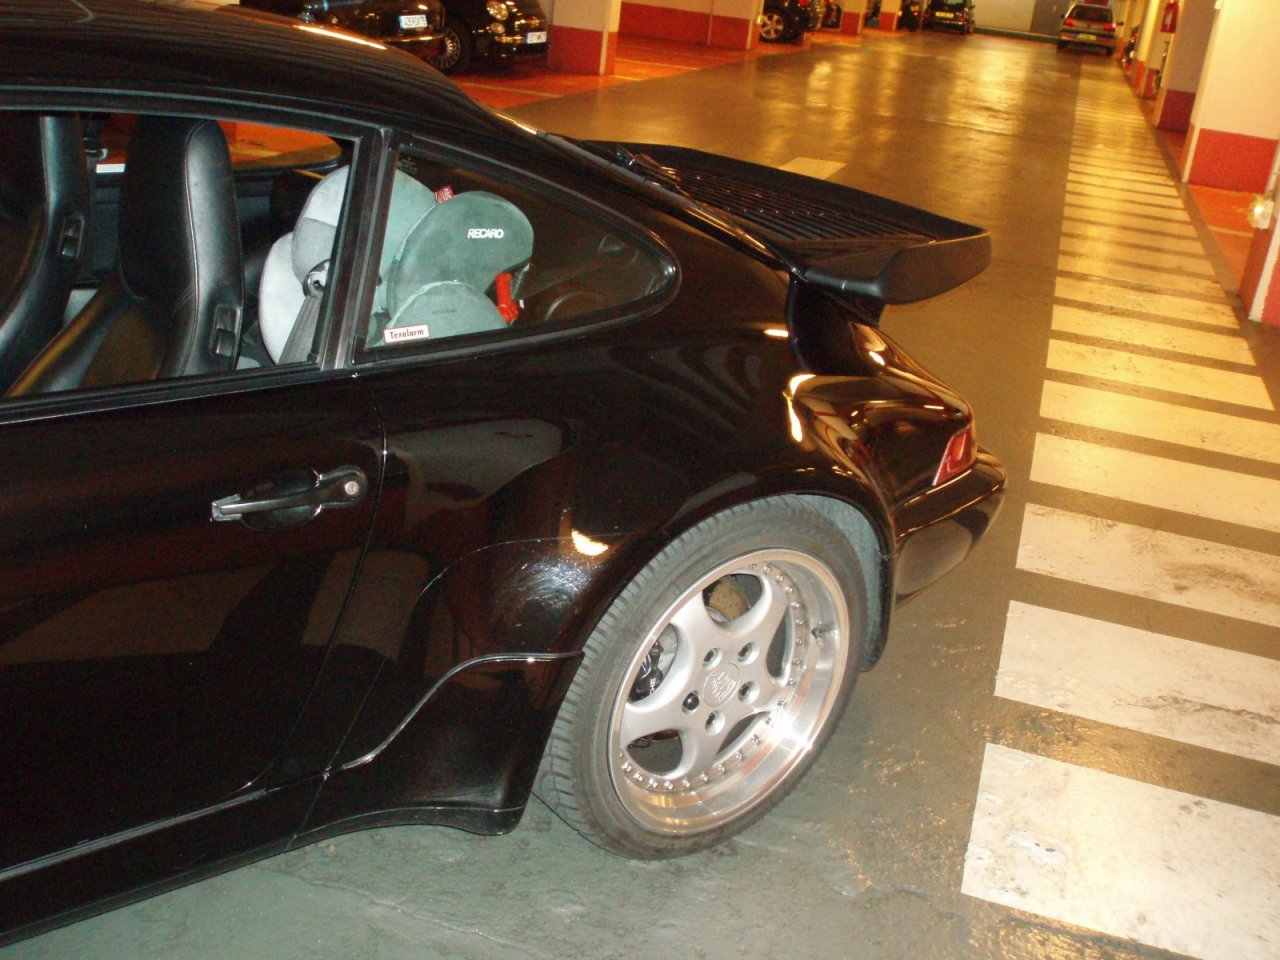 porsche 964 turbo indecision 2010 2011 nouvelle voiture r serv e qui arrive que mi avril. Black Bedroom Furniture Sets. Home Design Ideas